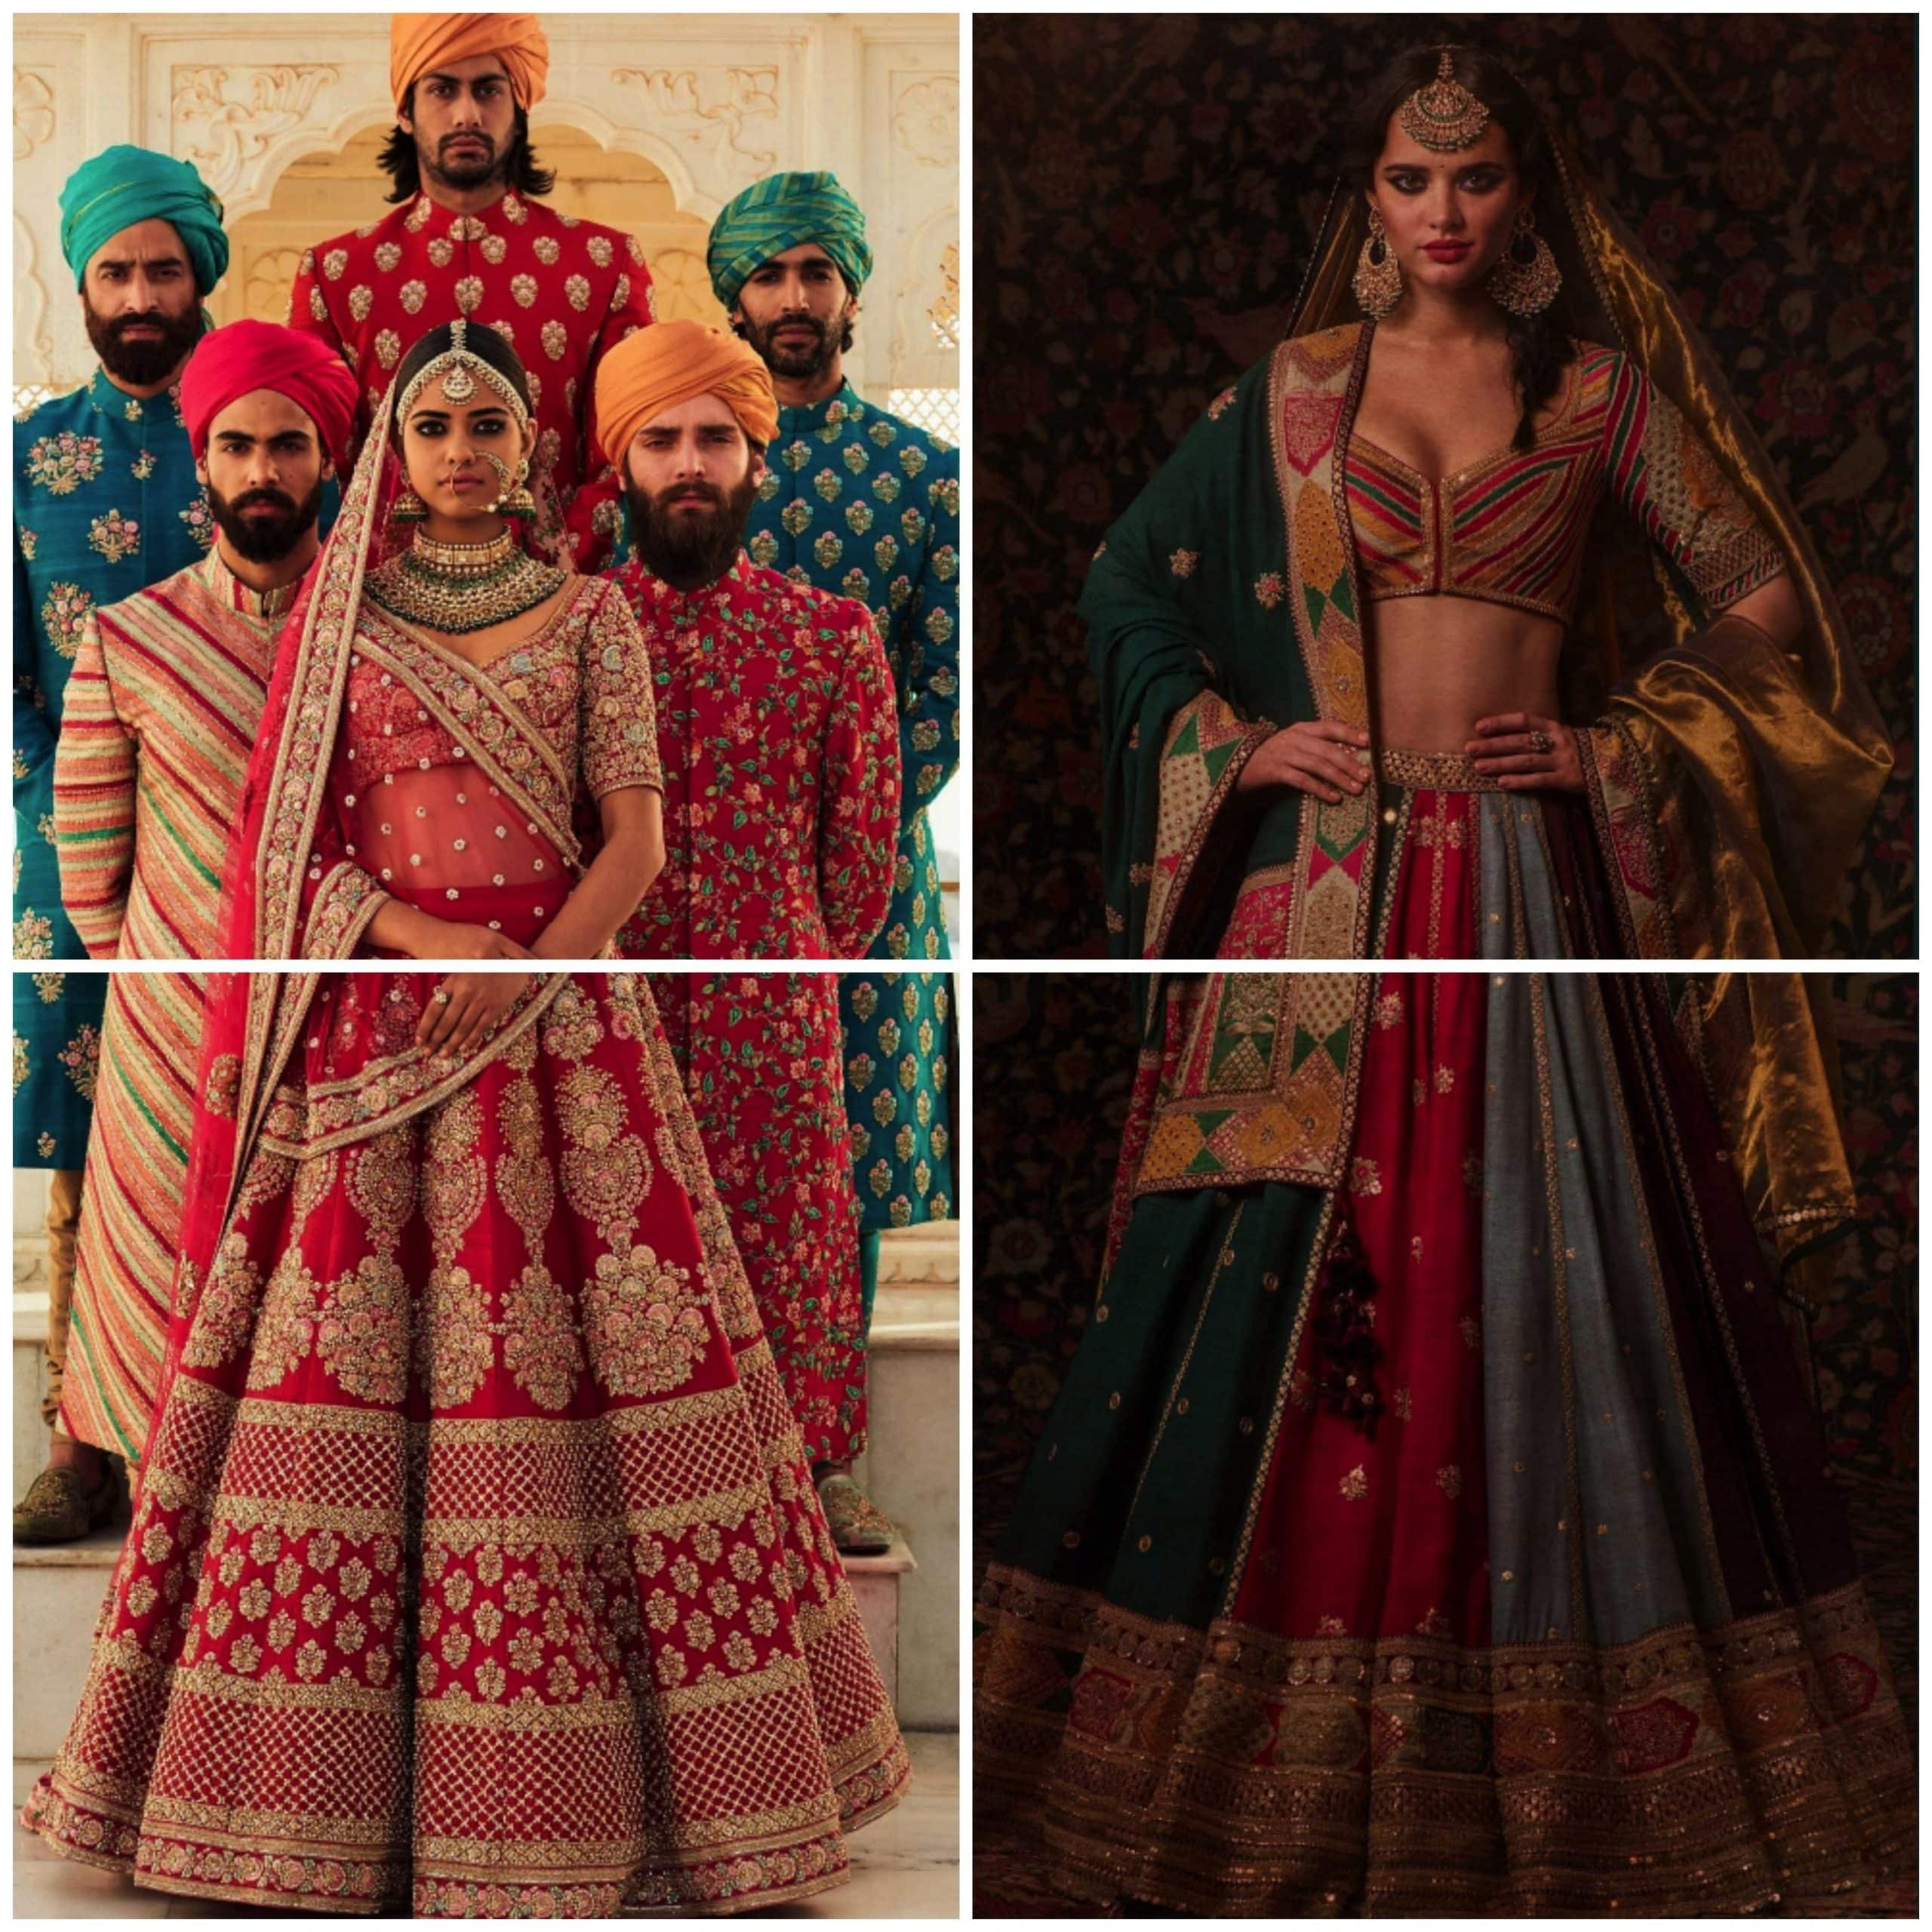 Indian Wedding Gown Designers: Top 10 Bridal Designers In India